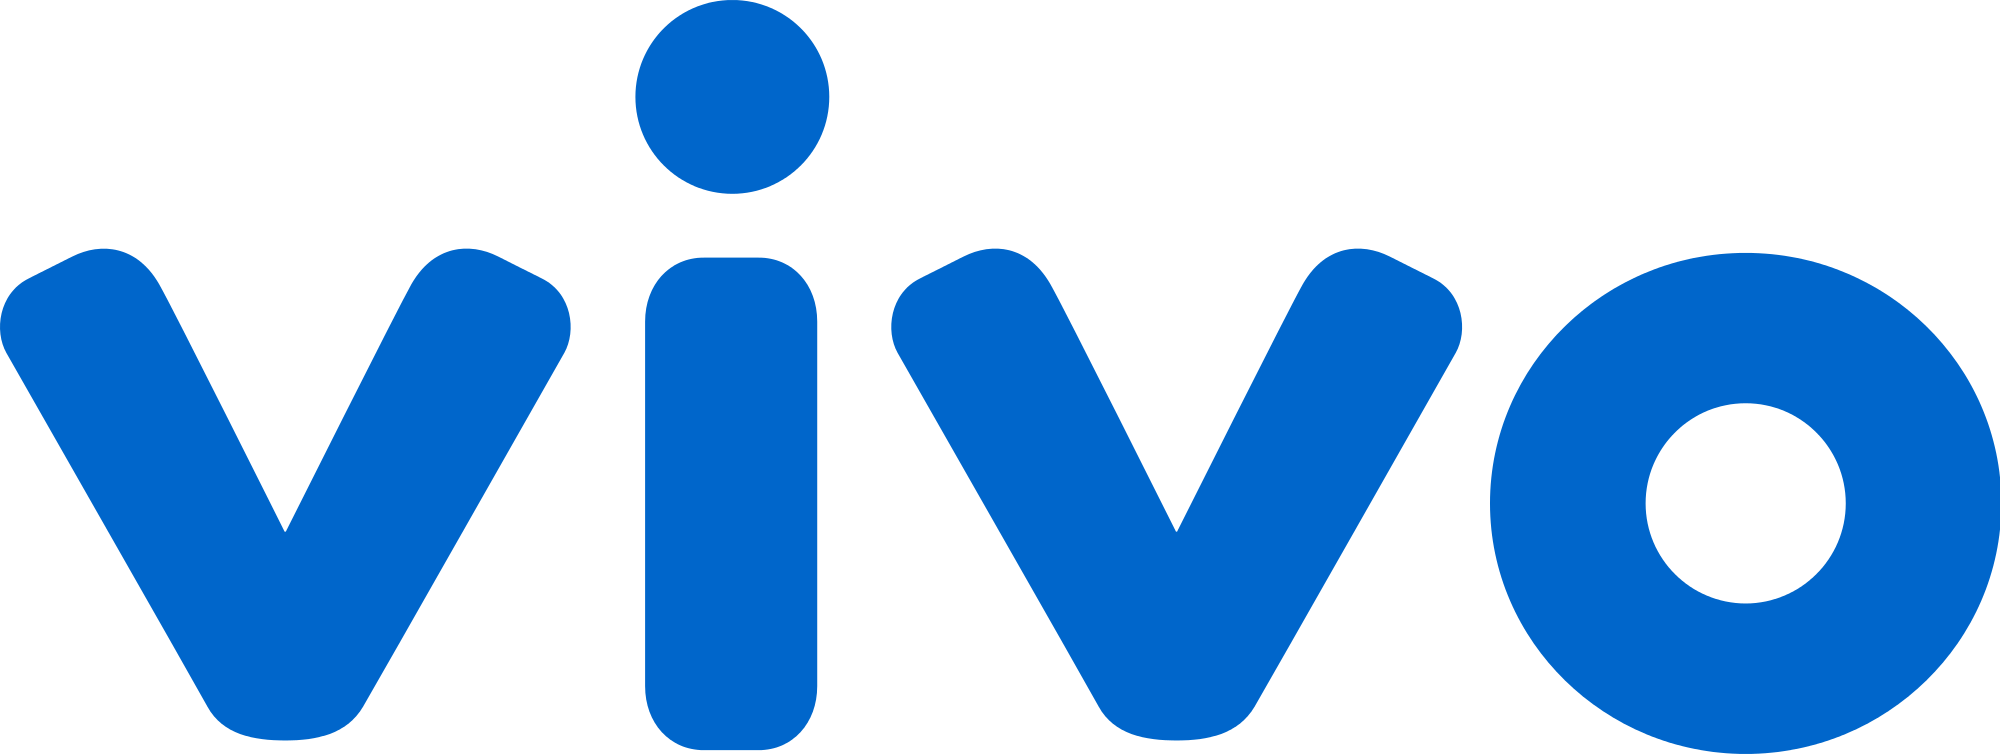 Viva Vivo - Telefonica adds Wi-Fi to global roaming service